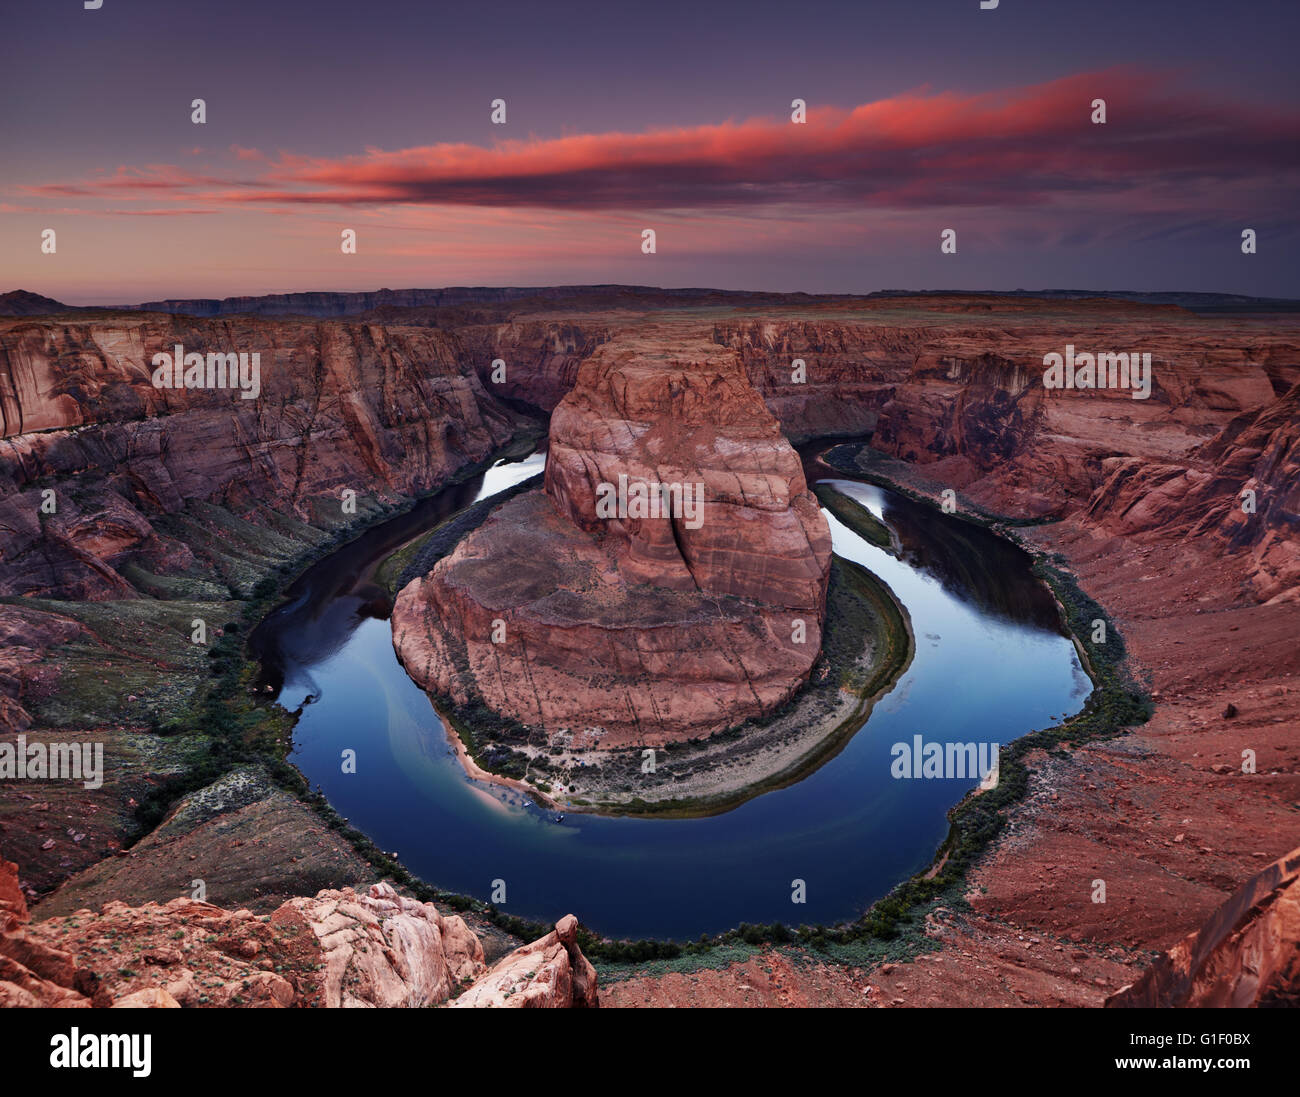 Colorado River bei Sonnenaufgang, Horse Shoe Bend, Page, Arizona, USA Stockbild